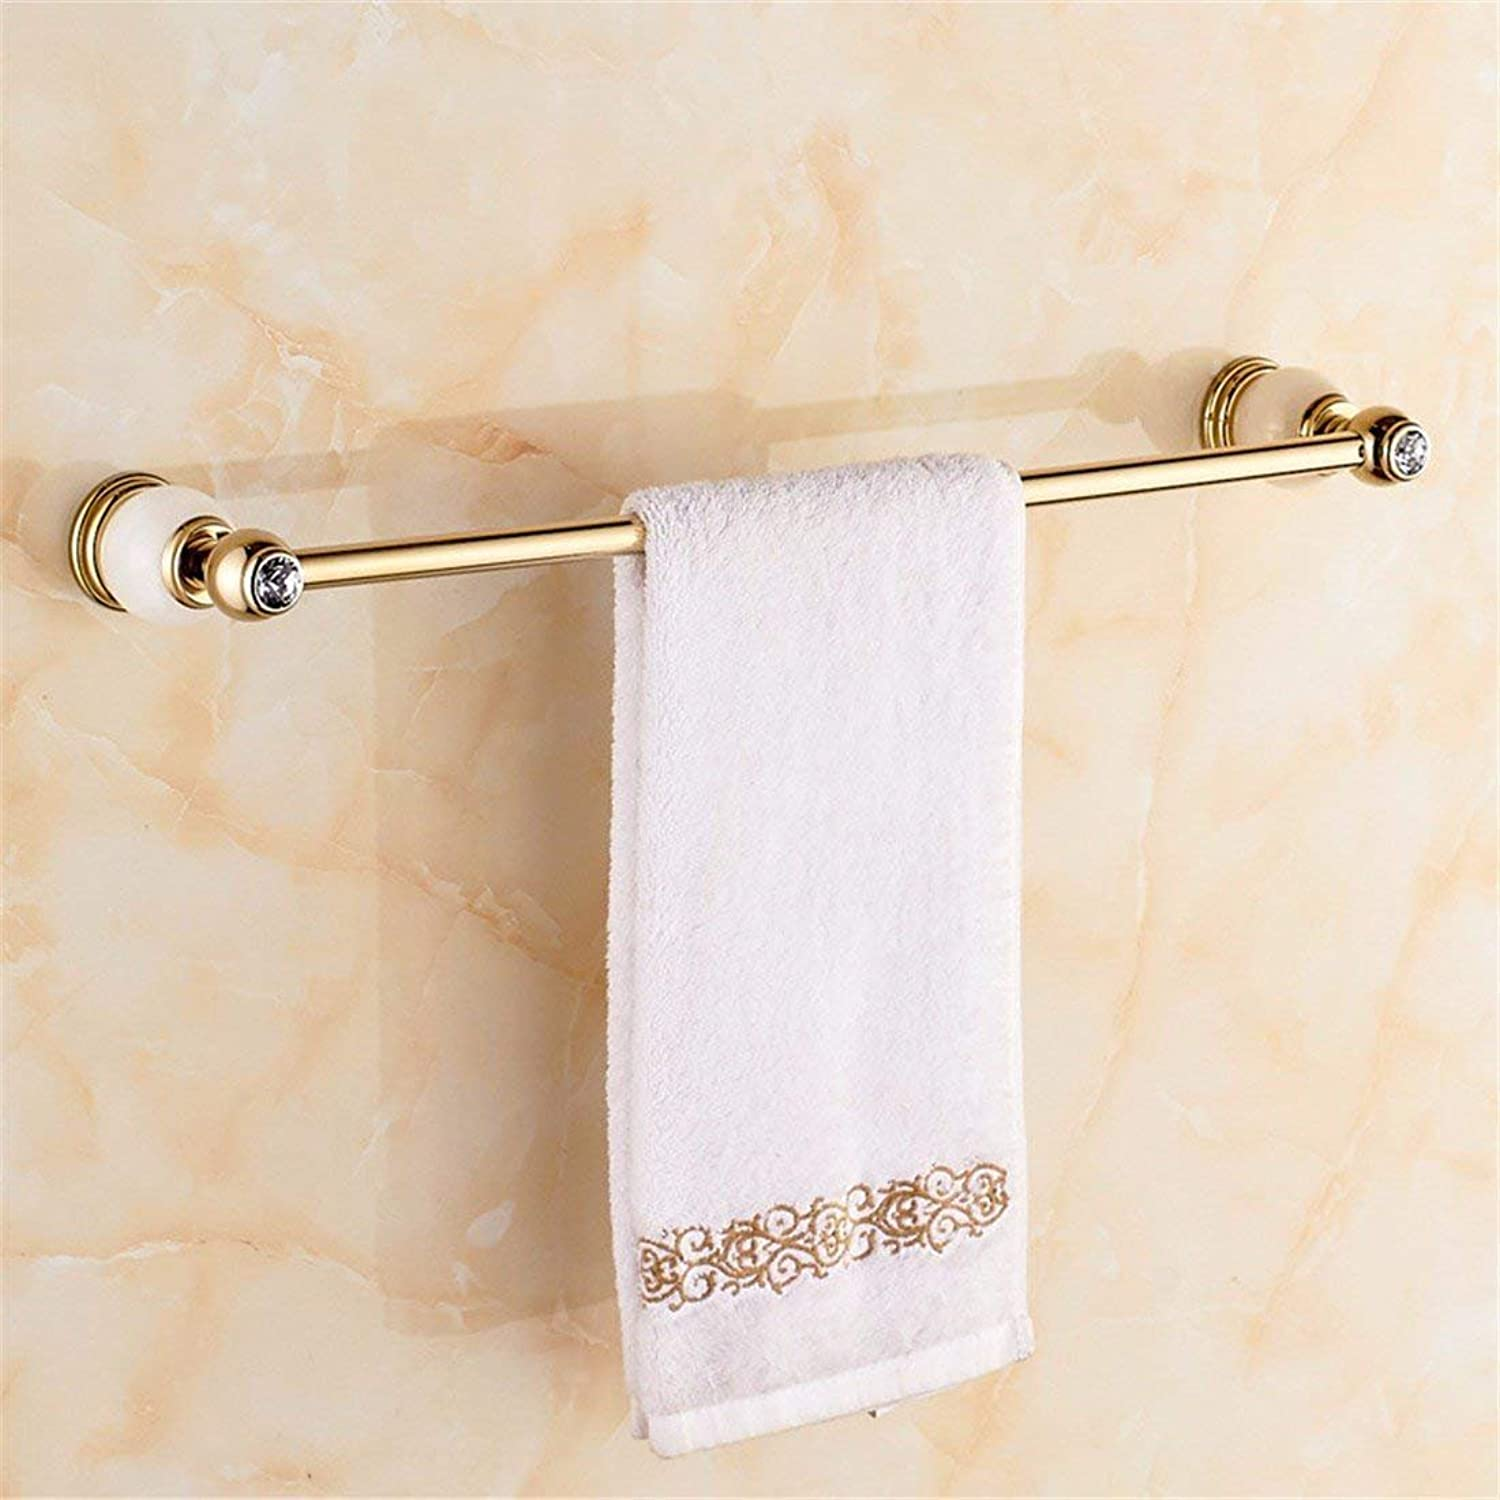 White gold of European Christmas Copper Accessories Jade Diamond of Bathroom Basic Set of WC Brush Paper Holder,Single Rod